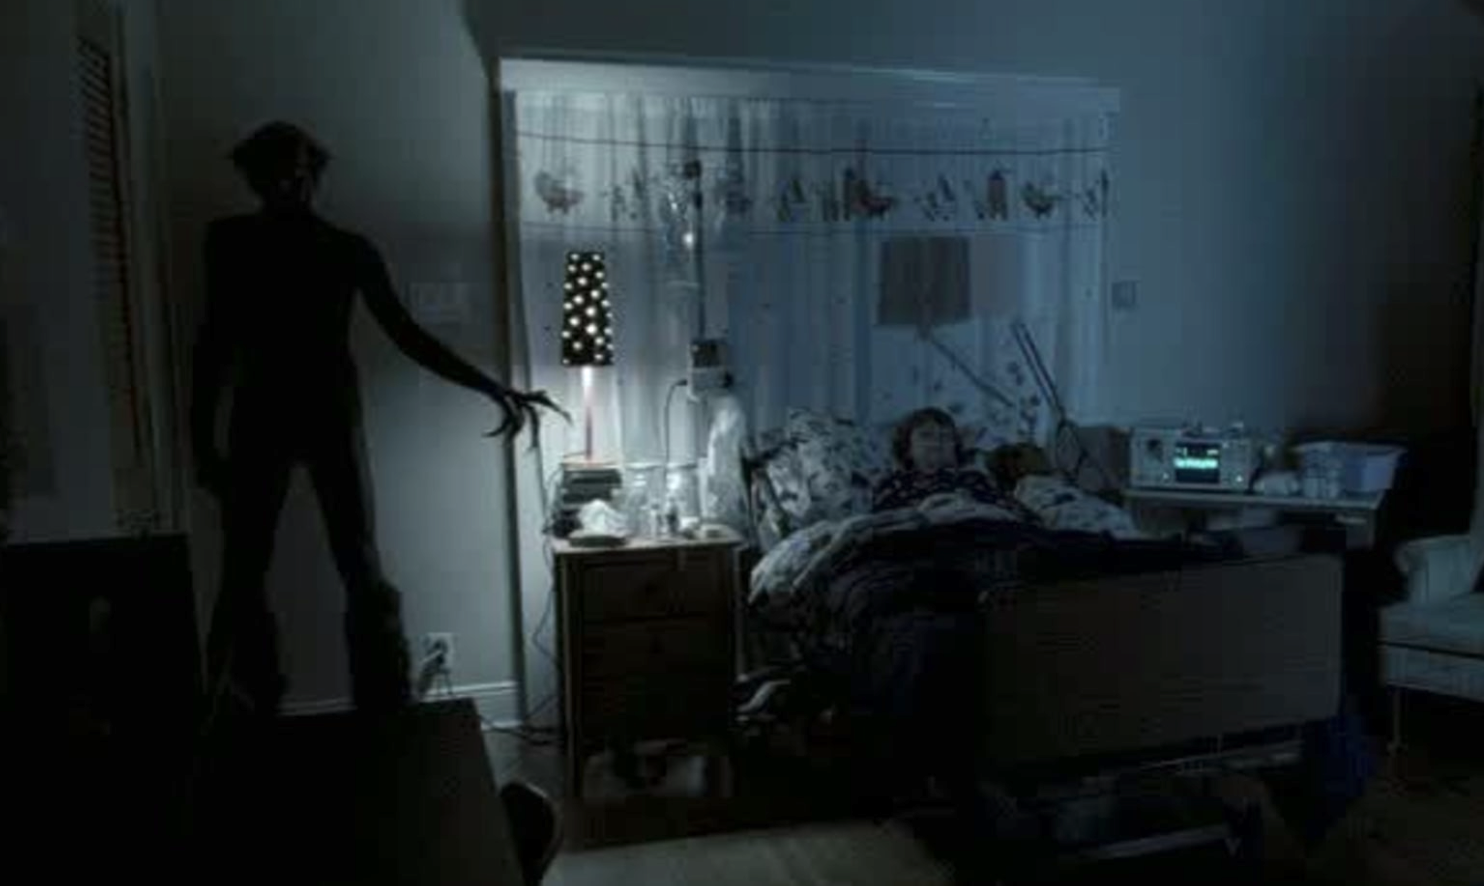 A young boy sleeps in a dark room while a creature stands in the corner